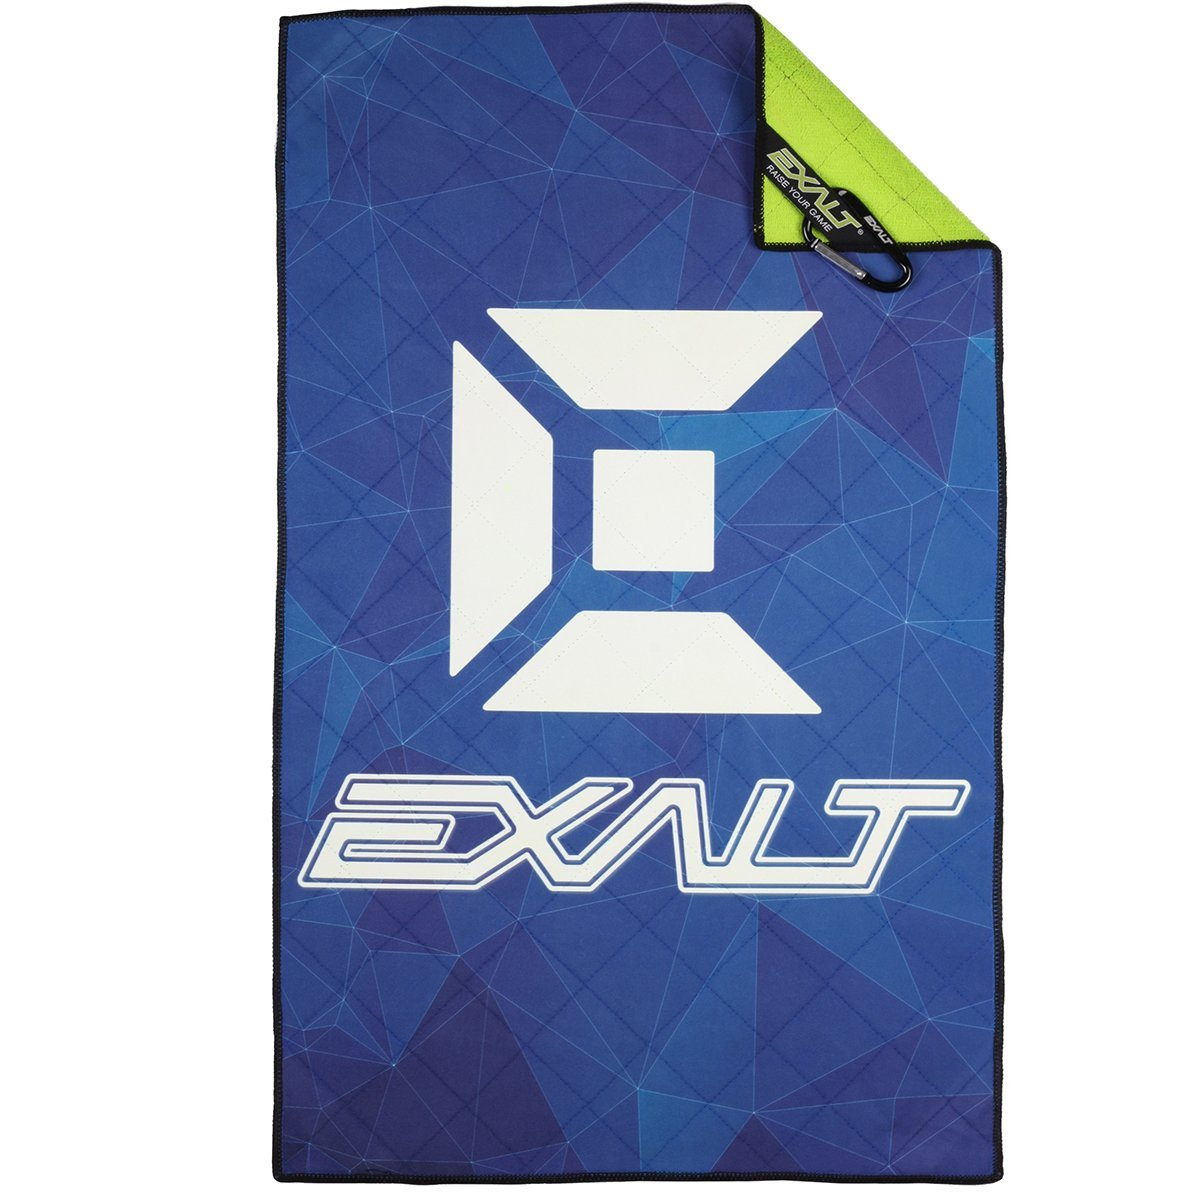 Photos of Exalt Microfiber - Team Size - Crystal Blue. Photo taken by drpaintball.com